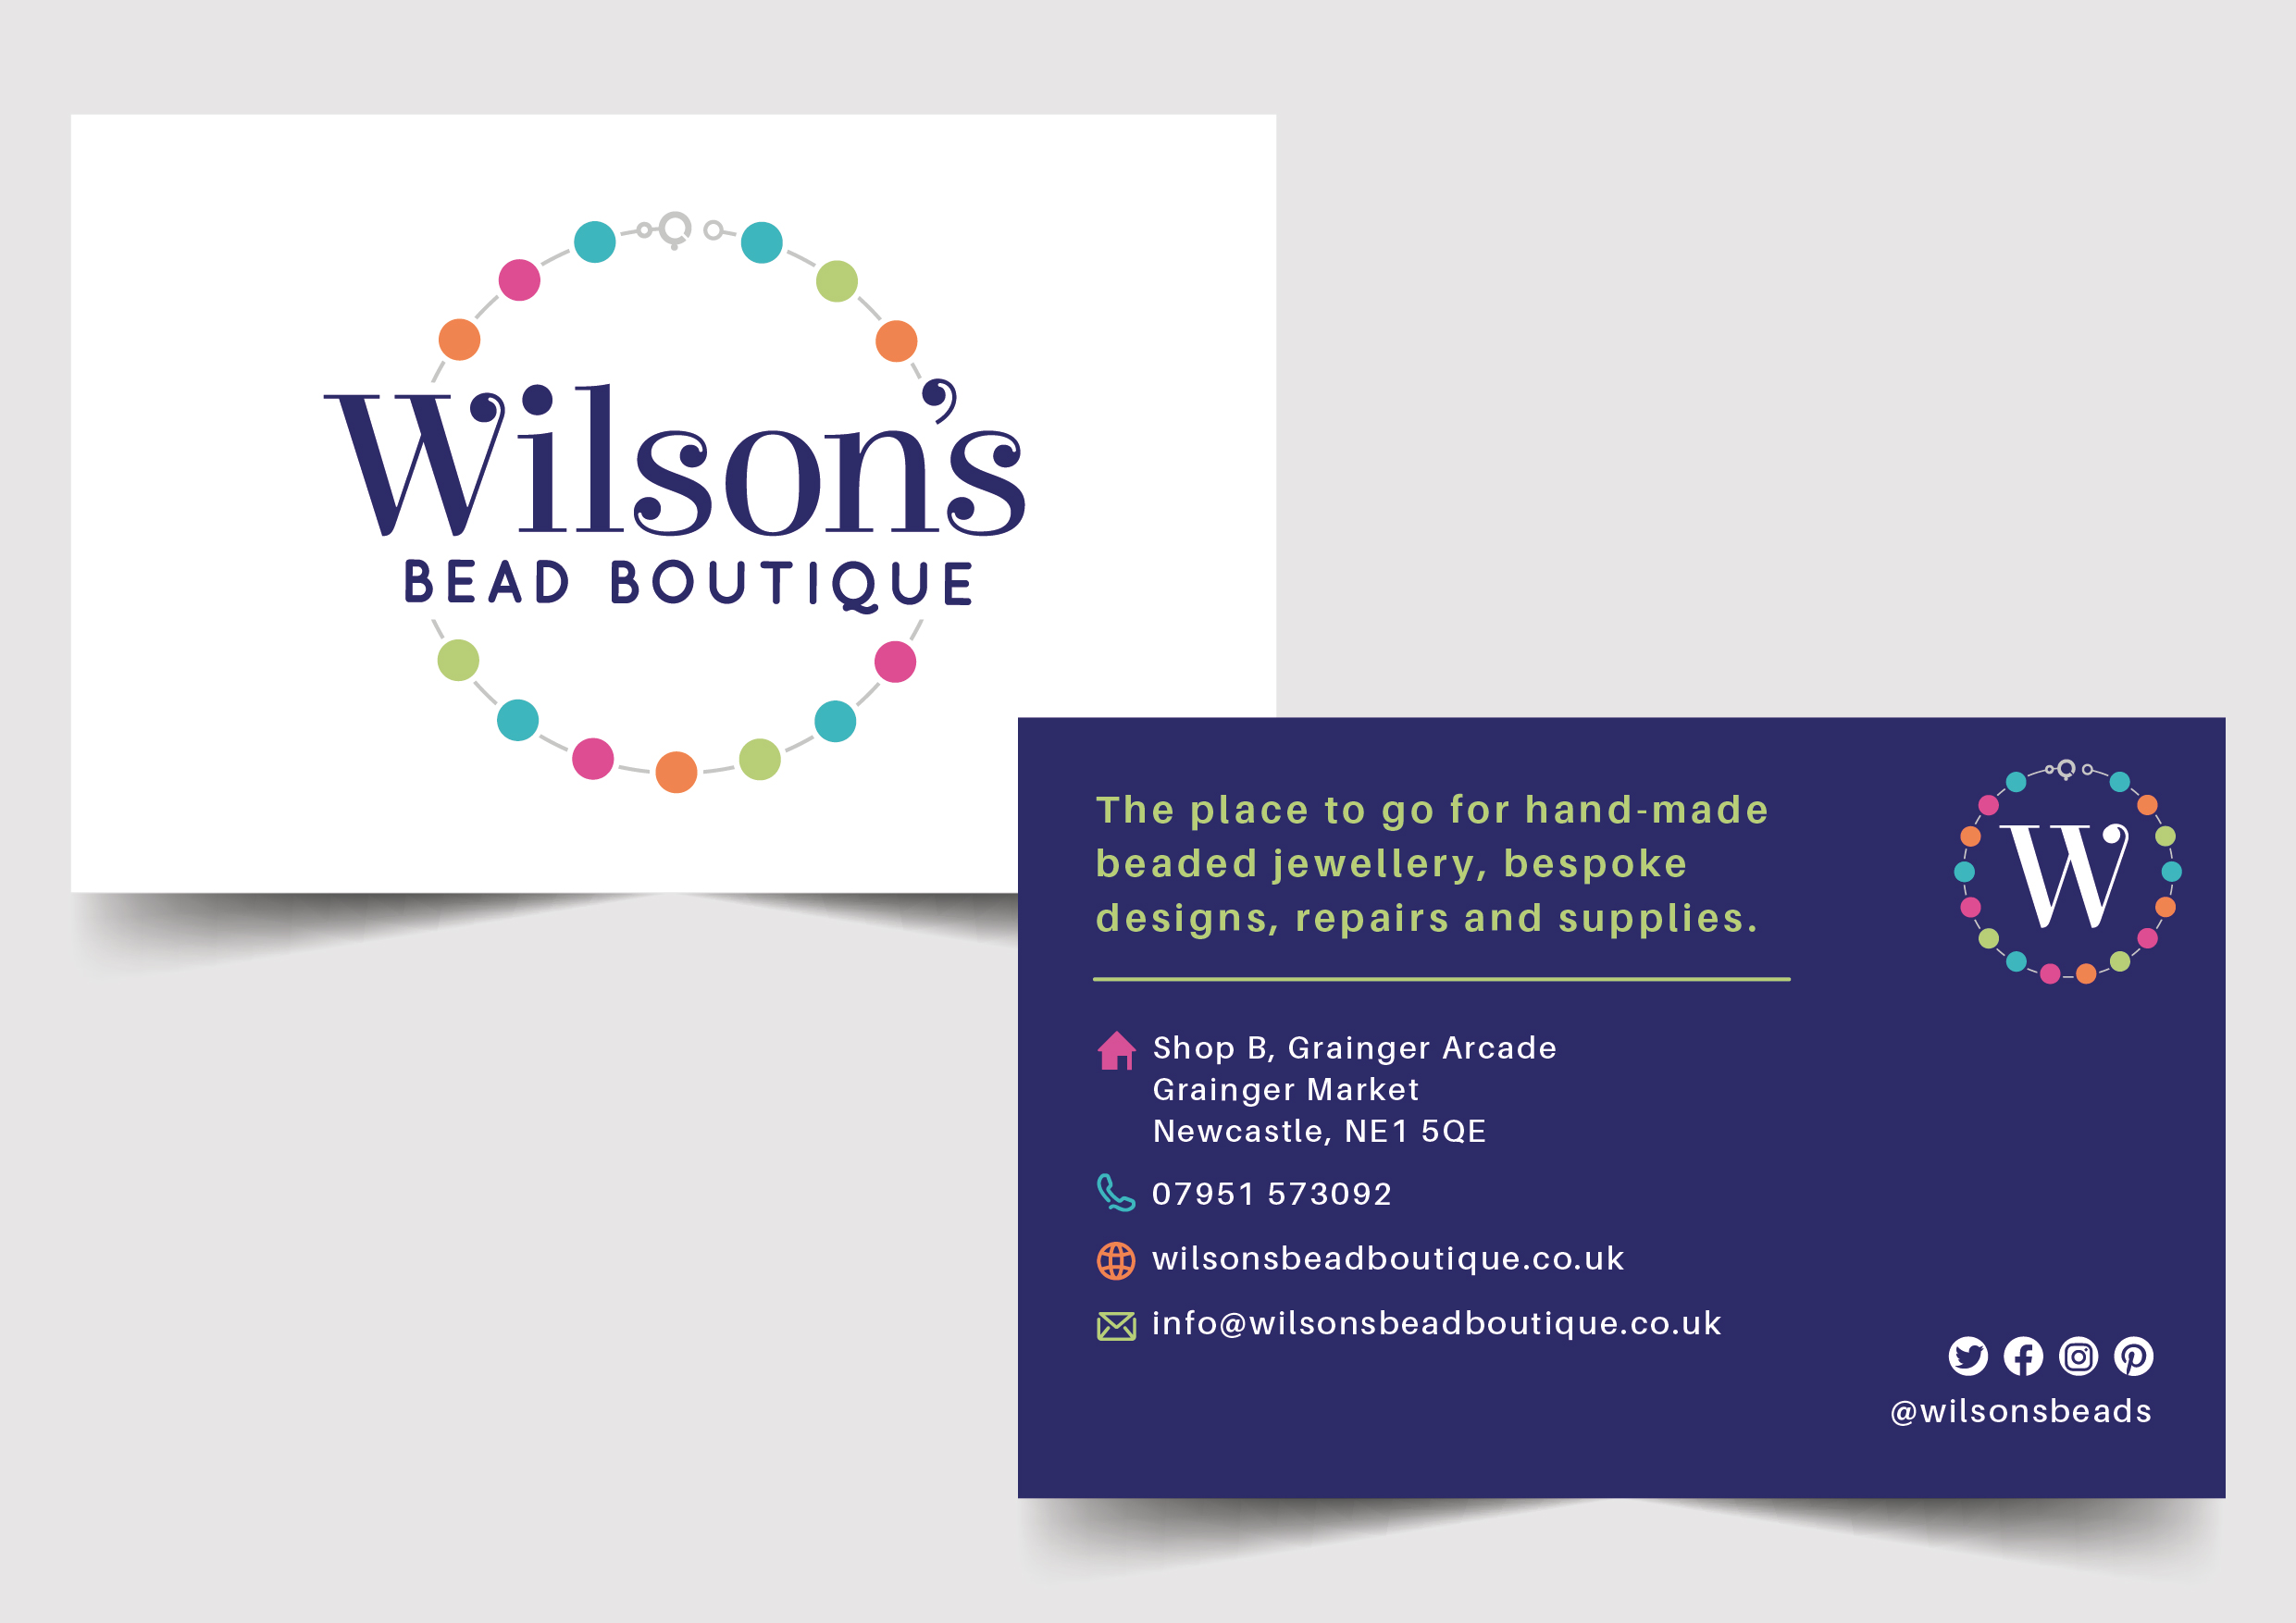 Branding - A beautiful brand is vital for any business. Whether that's creating a brand for a new business, or a rebrand or brand refresh, it can completely transform the way your clients or customers perceive you.